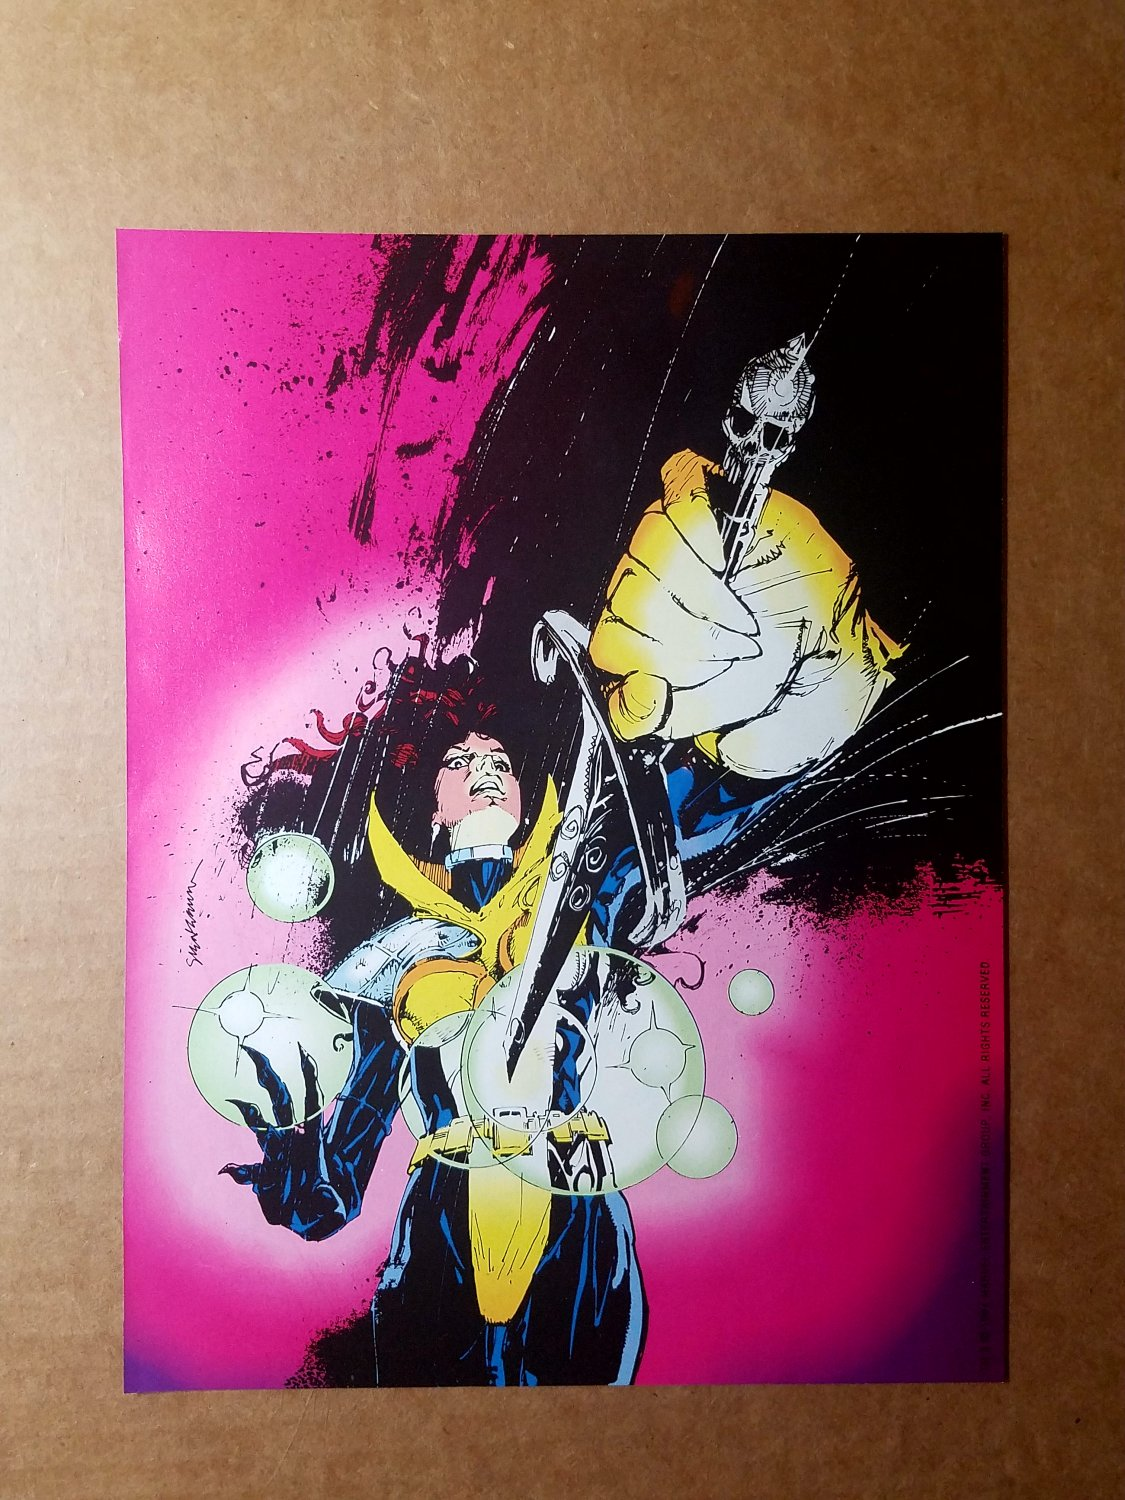 X Universe X-Men Marvel Comics Mini Poster by Bill Sienkiewicz